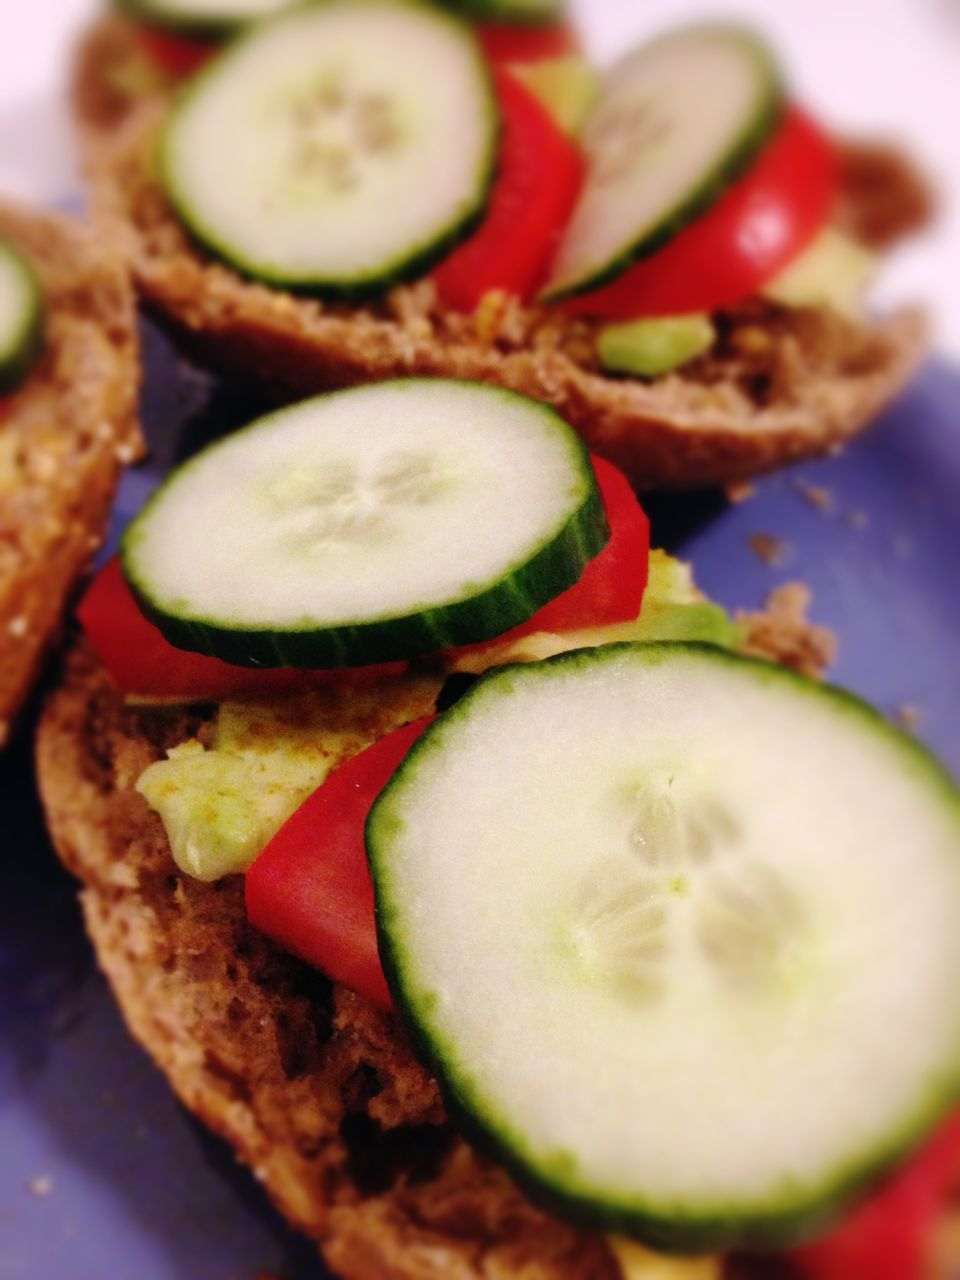 food and drink, food, freshness, indoors, slice, healthy eating, no people, cucumber, ready-to-eat, tomato, close-up, plate, sandwich, day